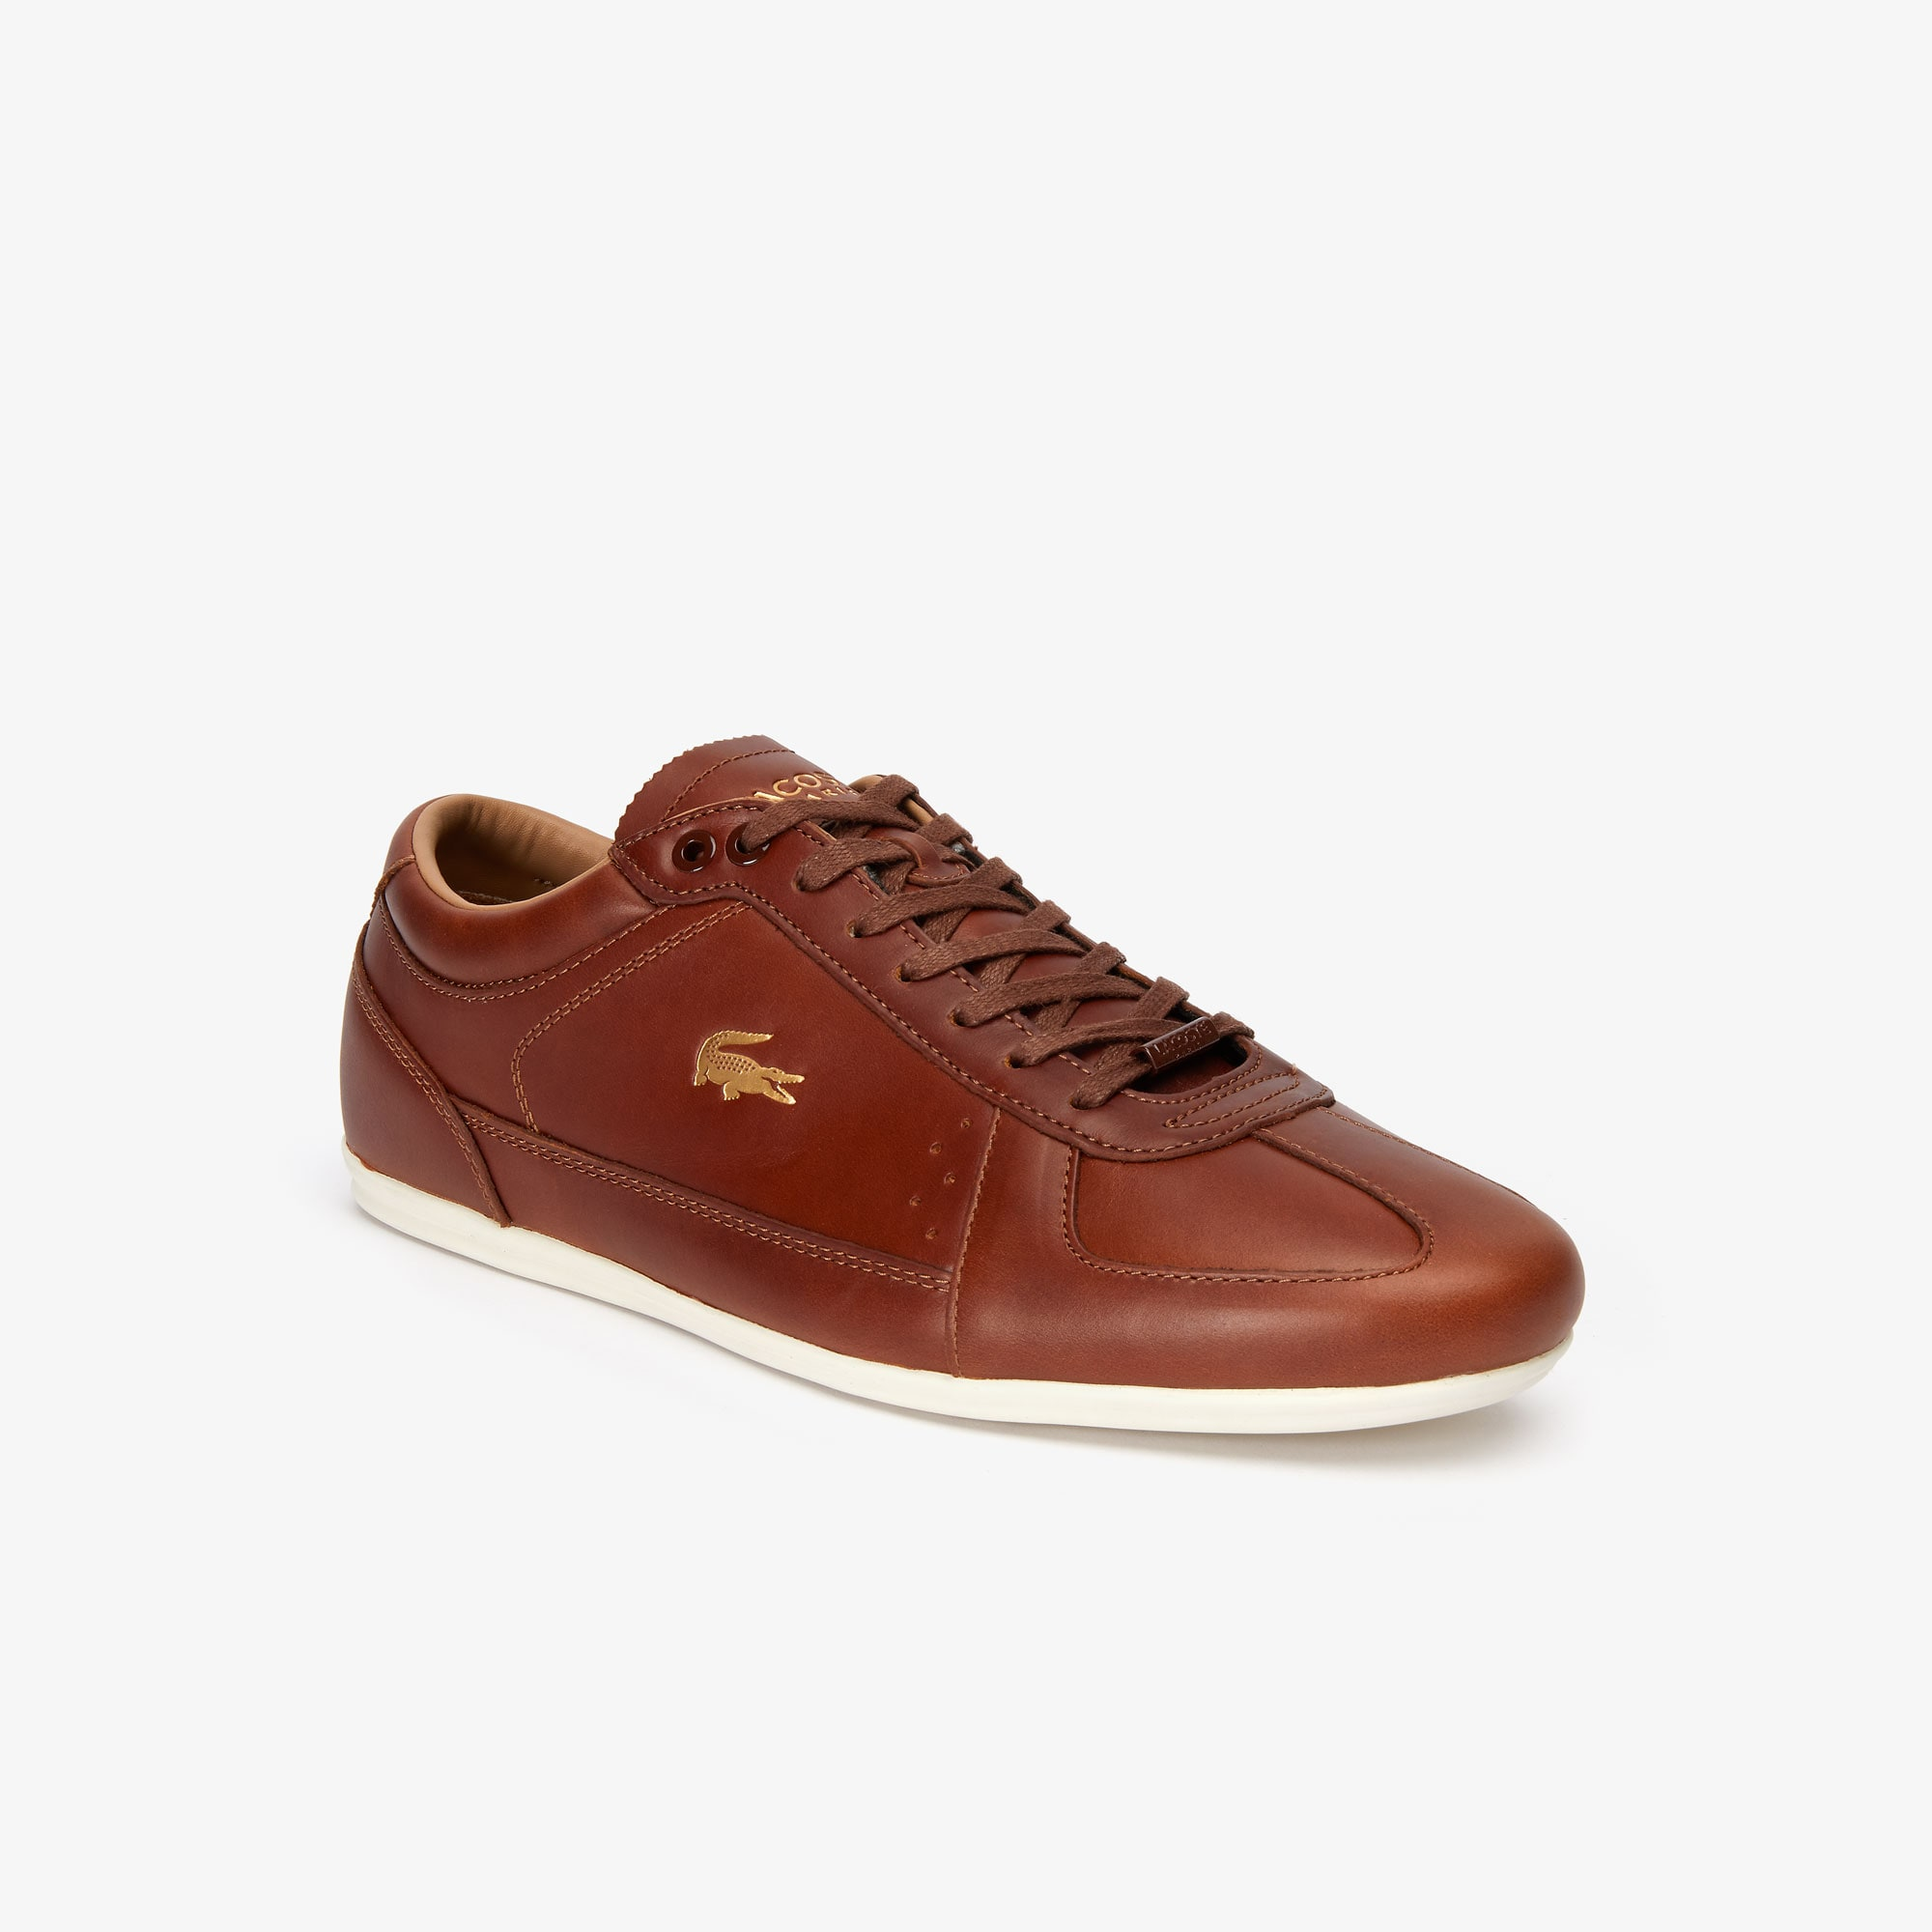 72d4800910517 Men's Shoes | Shoes for Men | LACOSTE